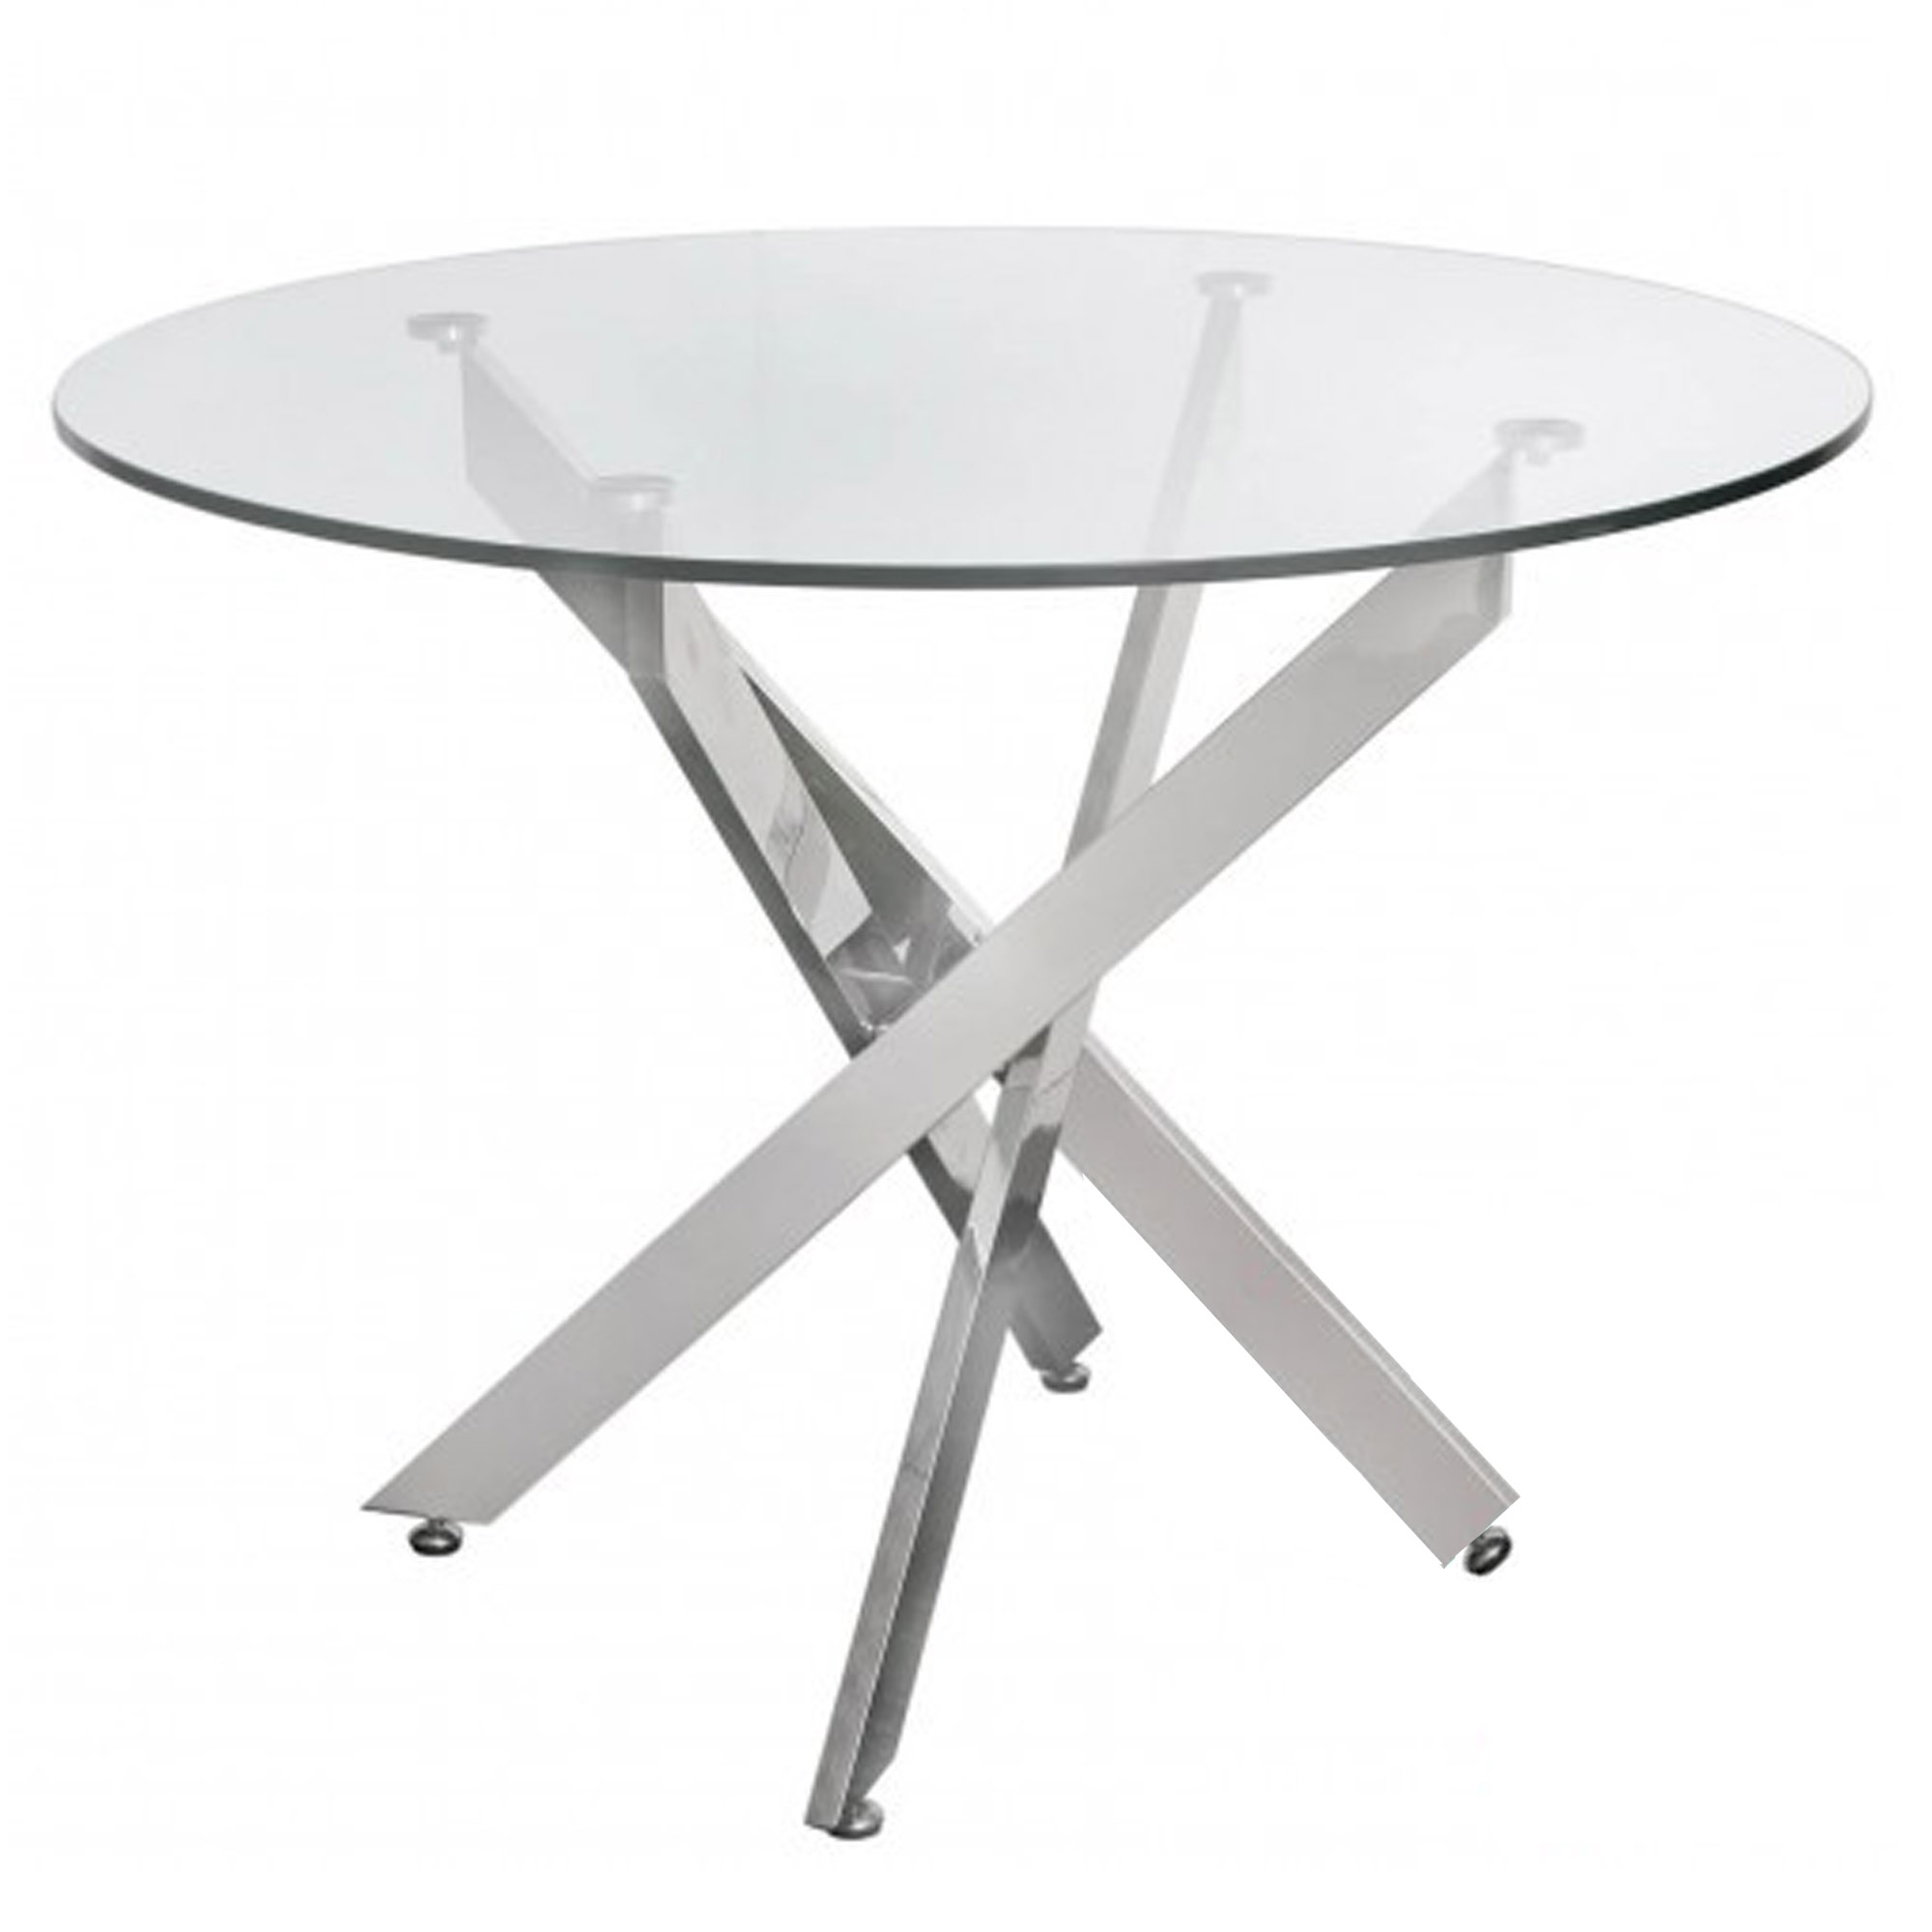 Most Recent Medium Dining Tables Inside Prato Medium Round Glass Dining Table (View 19 of 30)